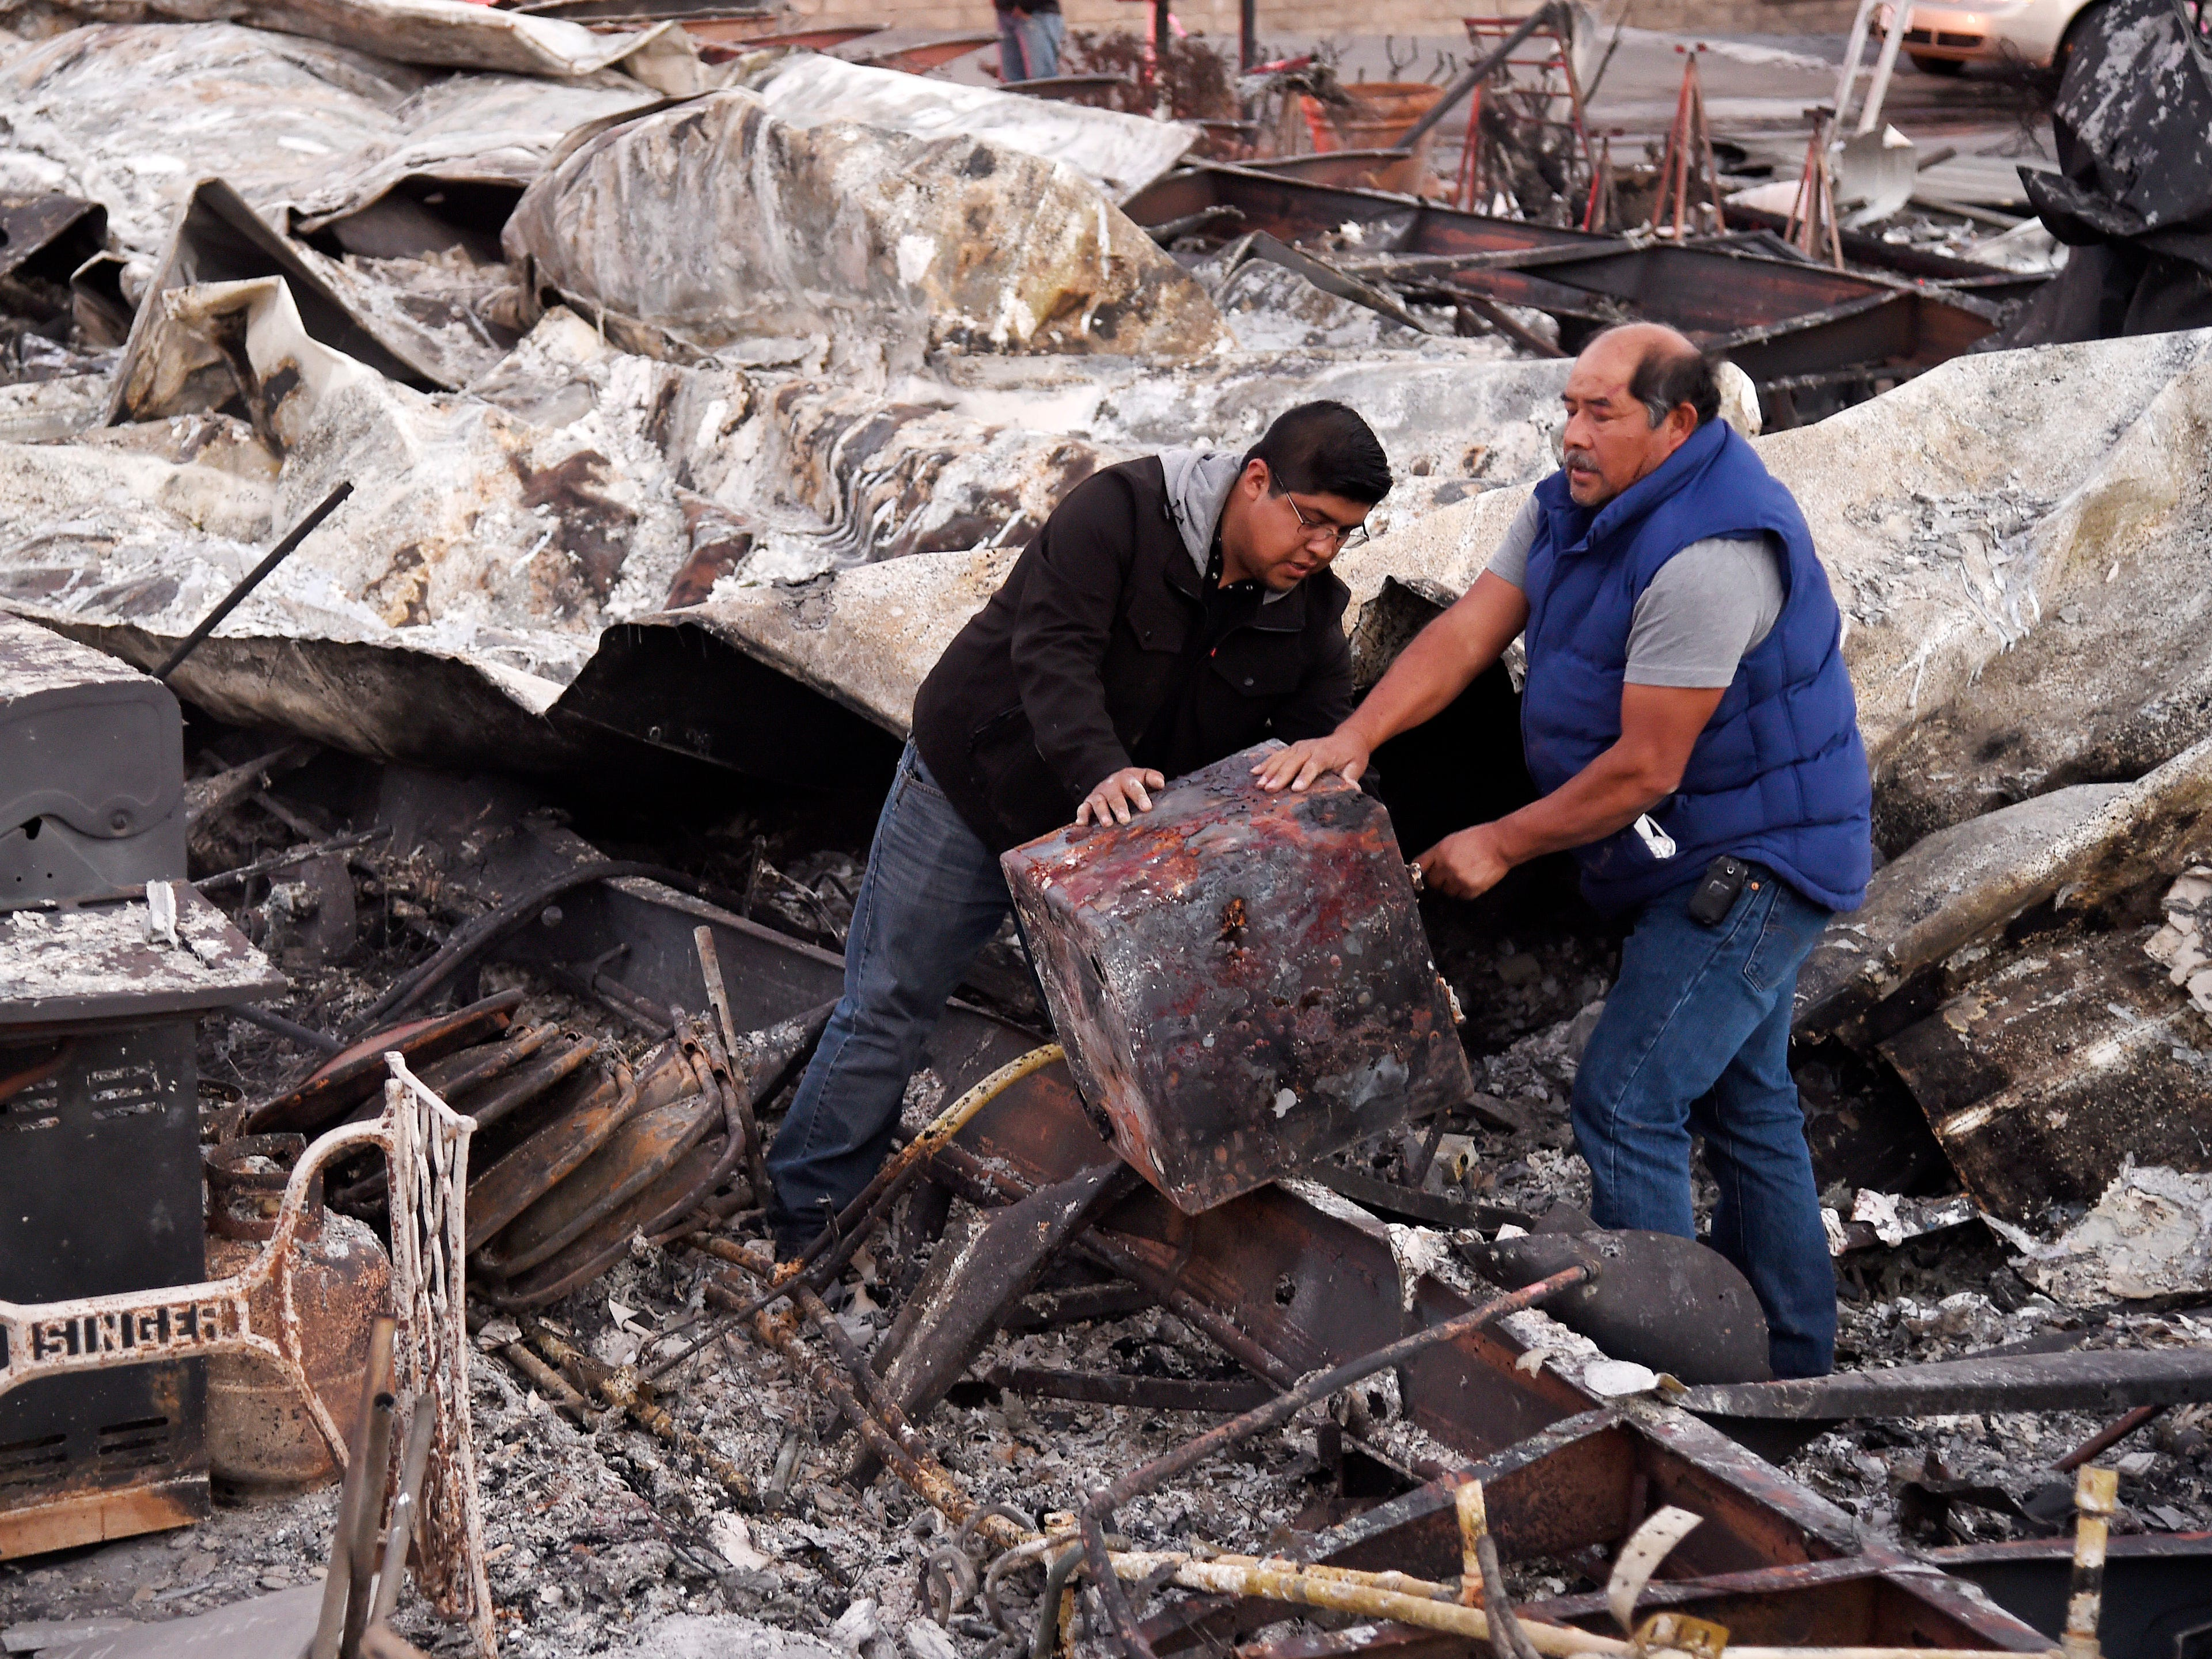 Santos Alvarado, right, and his son Ricky recover a safe from their destroyed home at Seminole Springs Mobile Home Park on Nov. 11, 2018, following devastating wildfires in the area in Agoura Hills, Calif.